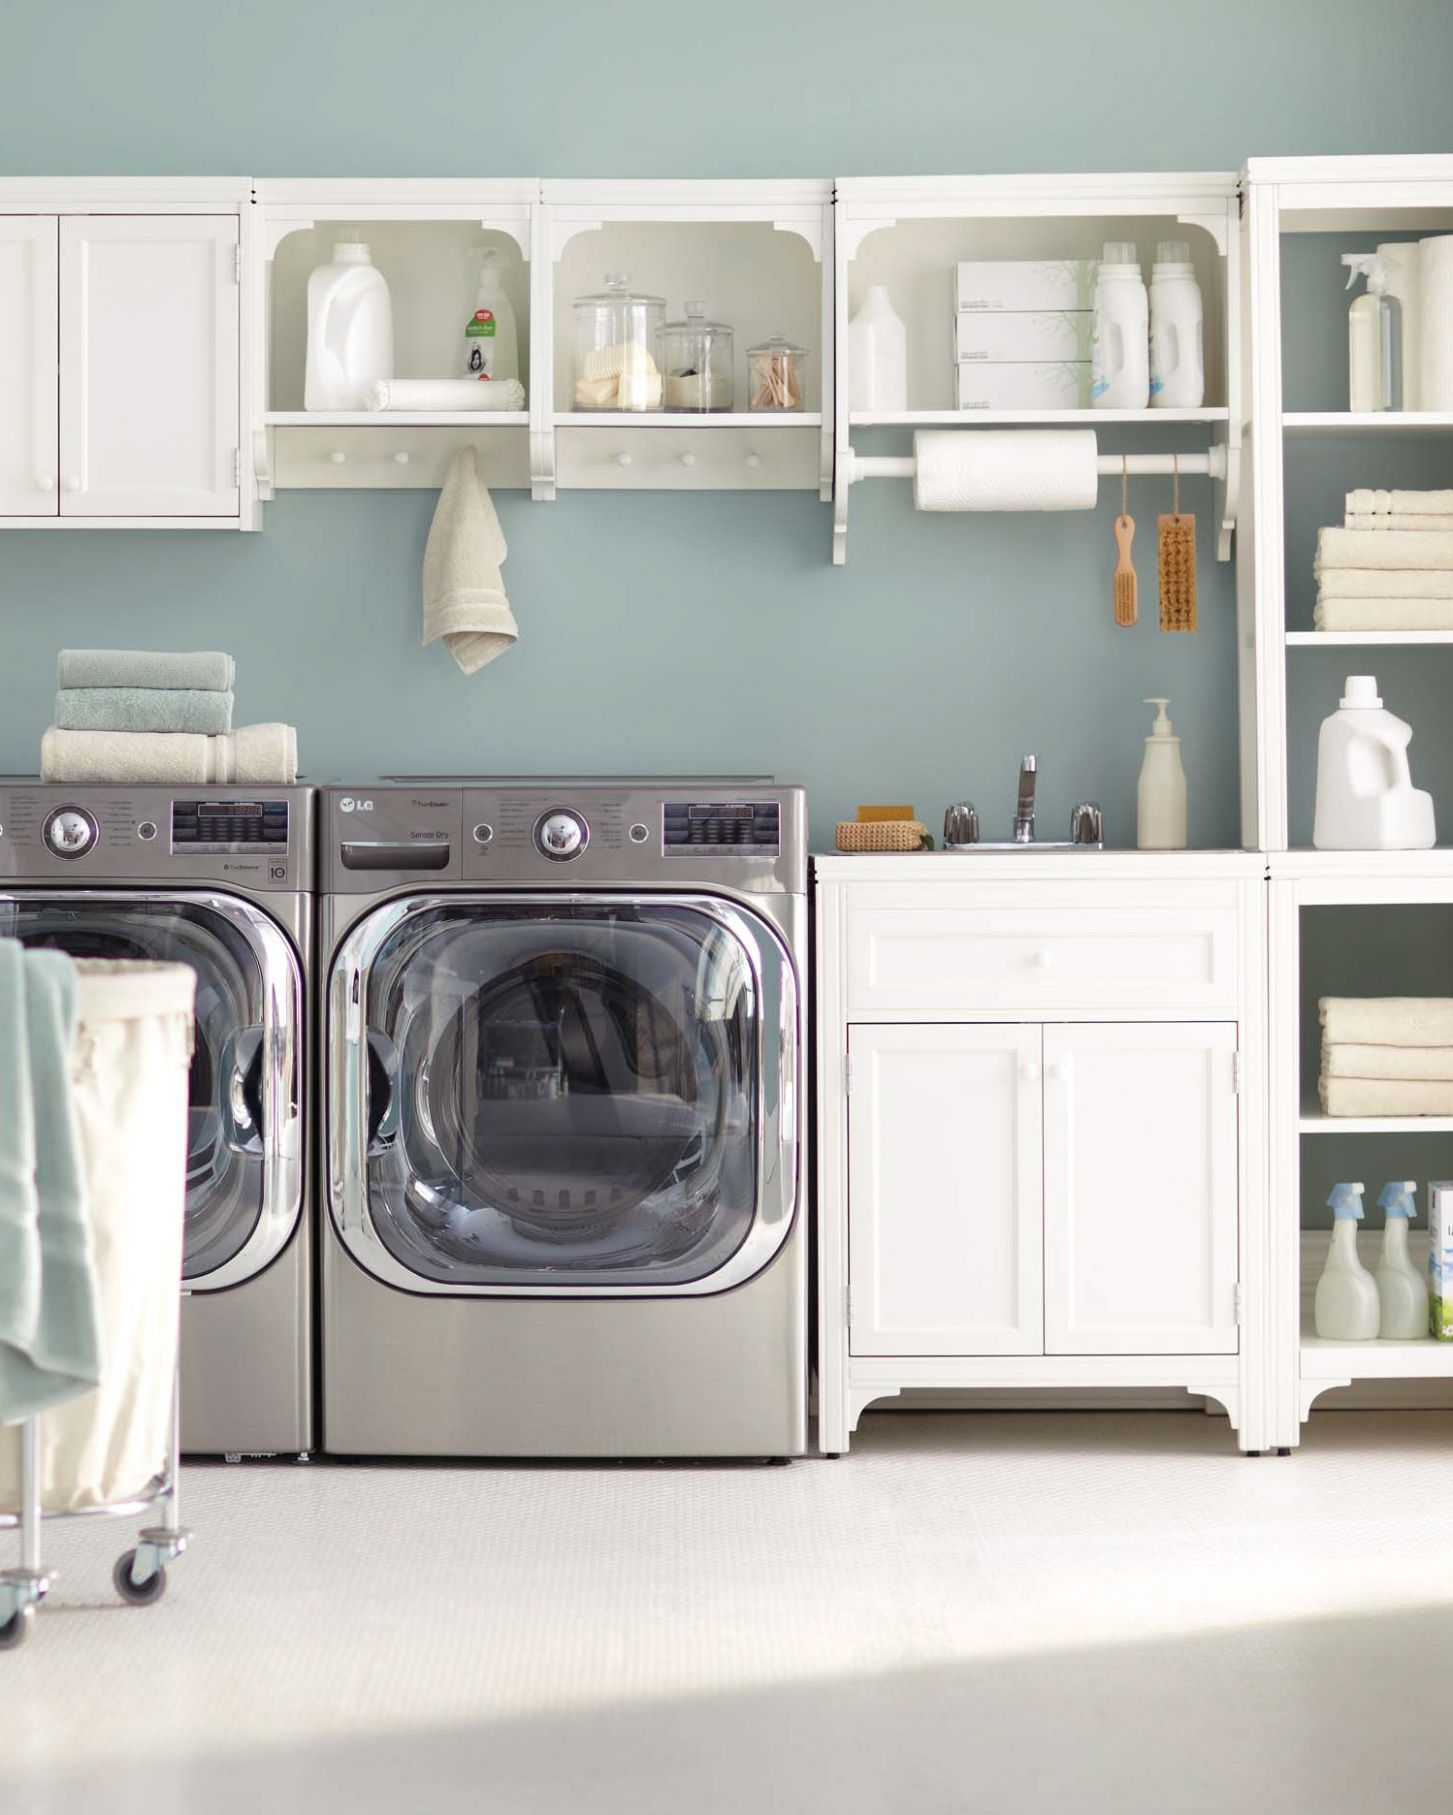 10 Essential Laundry Room Organizing Tips | Martha Stewart